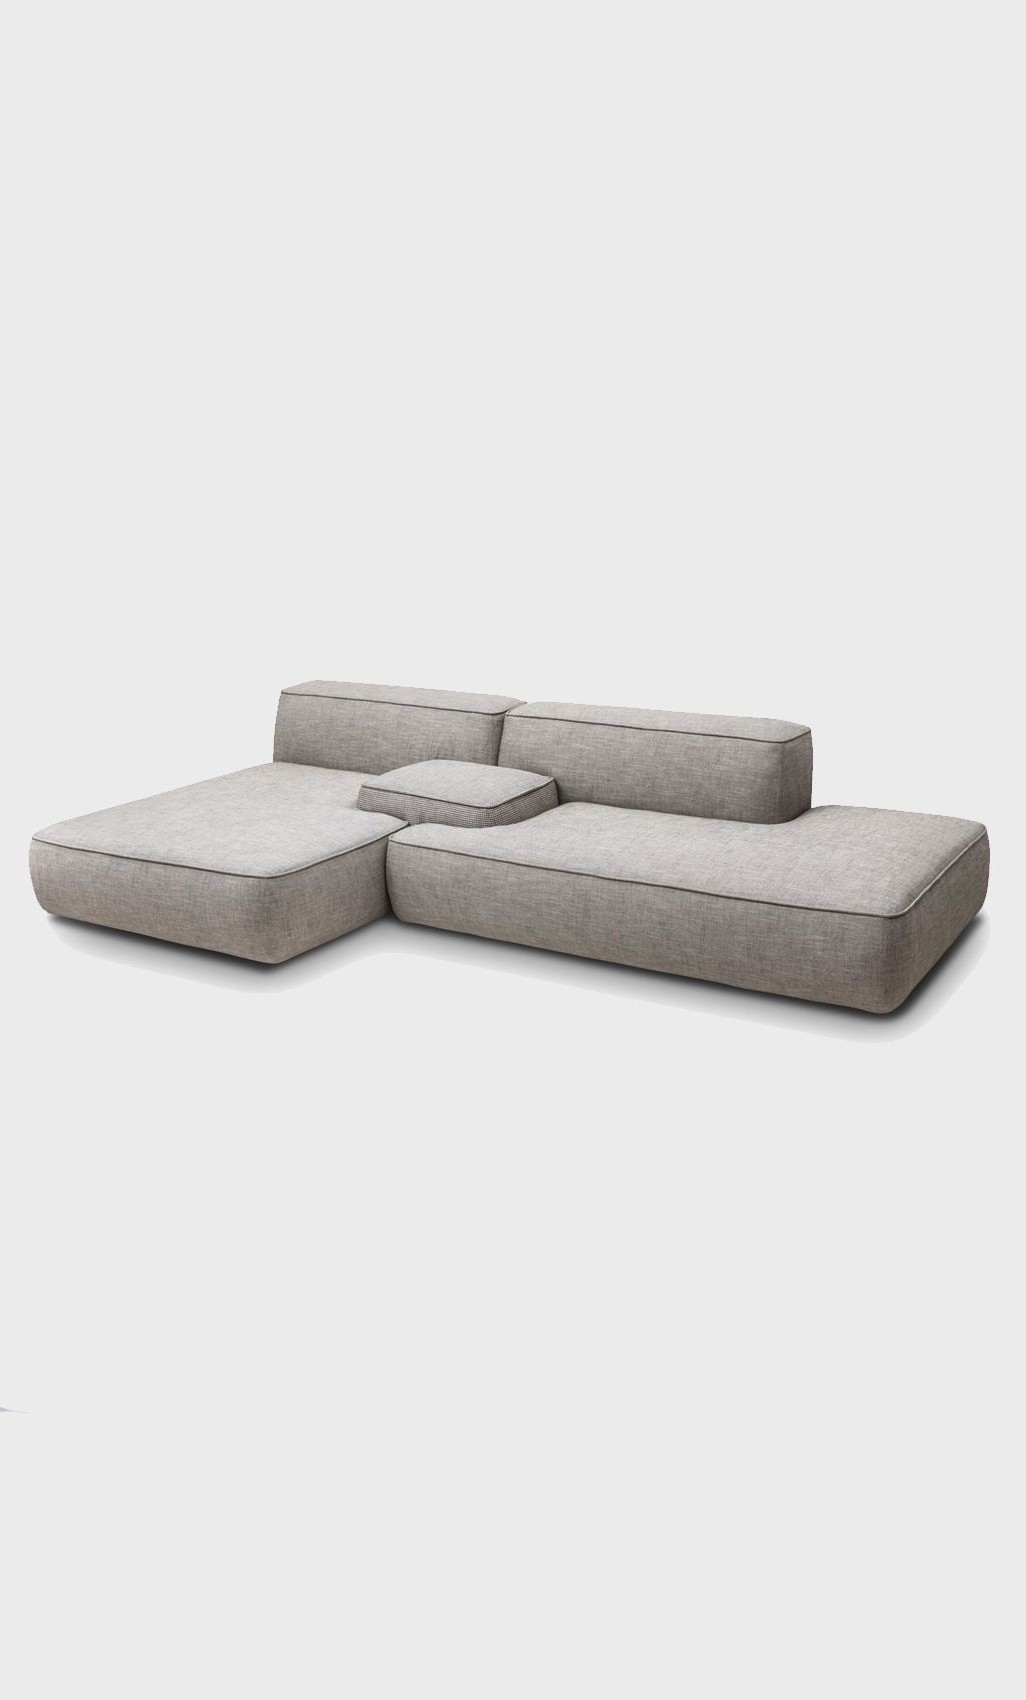 Modular Sofa: No Legs Or Really Small Low Legs (View 3 of 15)